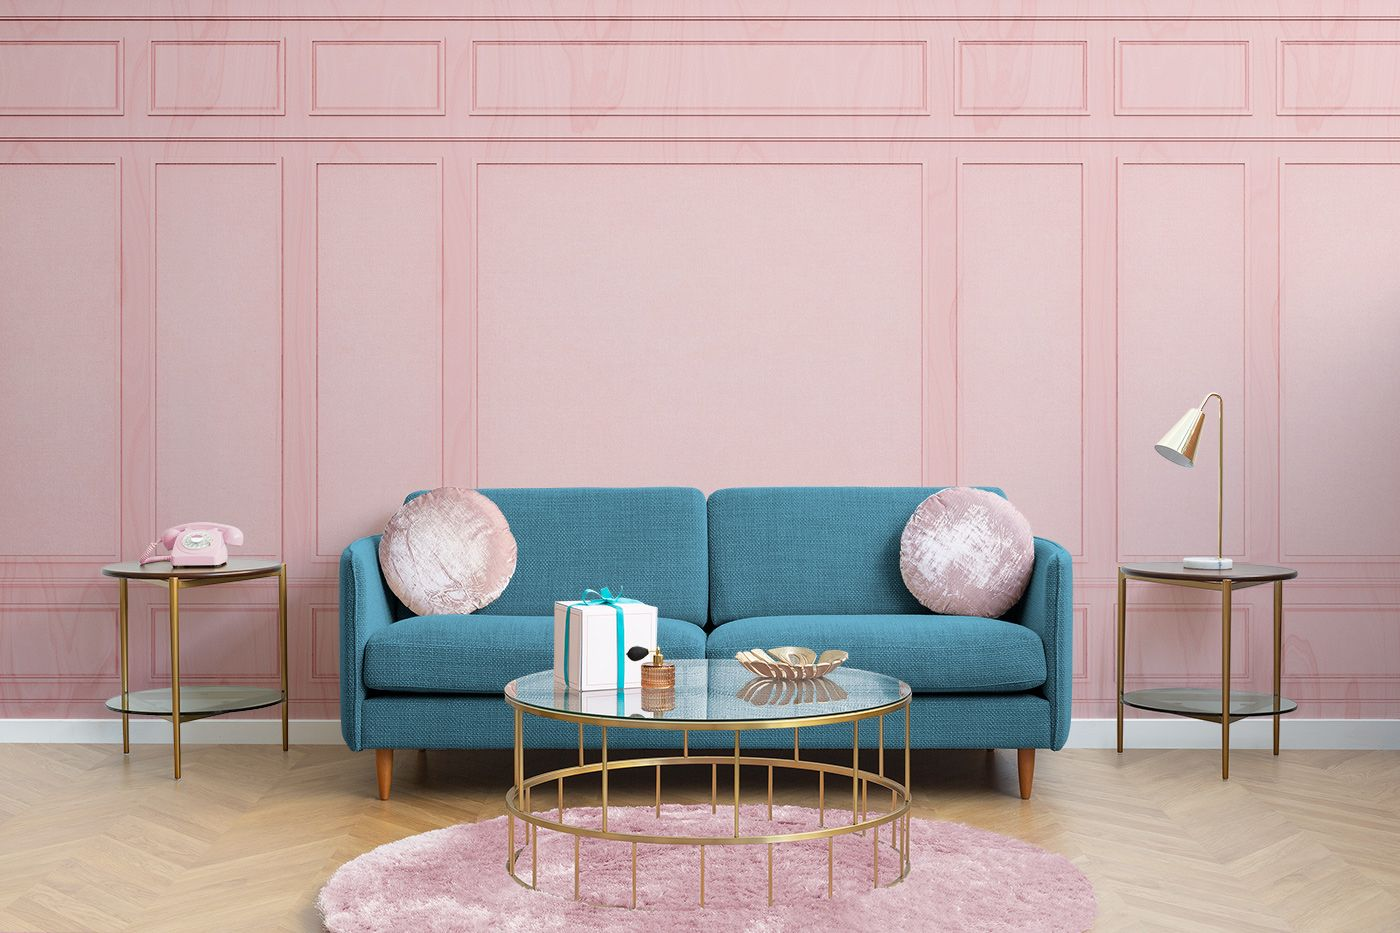 MuralsWallpaper Launches Collection Inspired By Wes Anderson